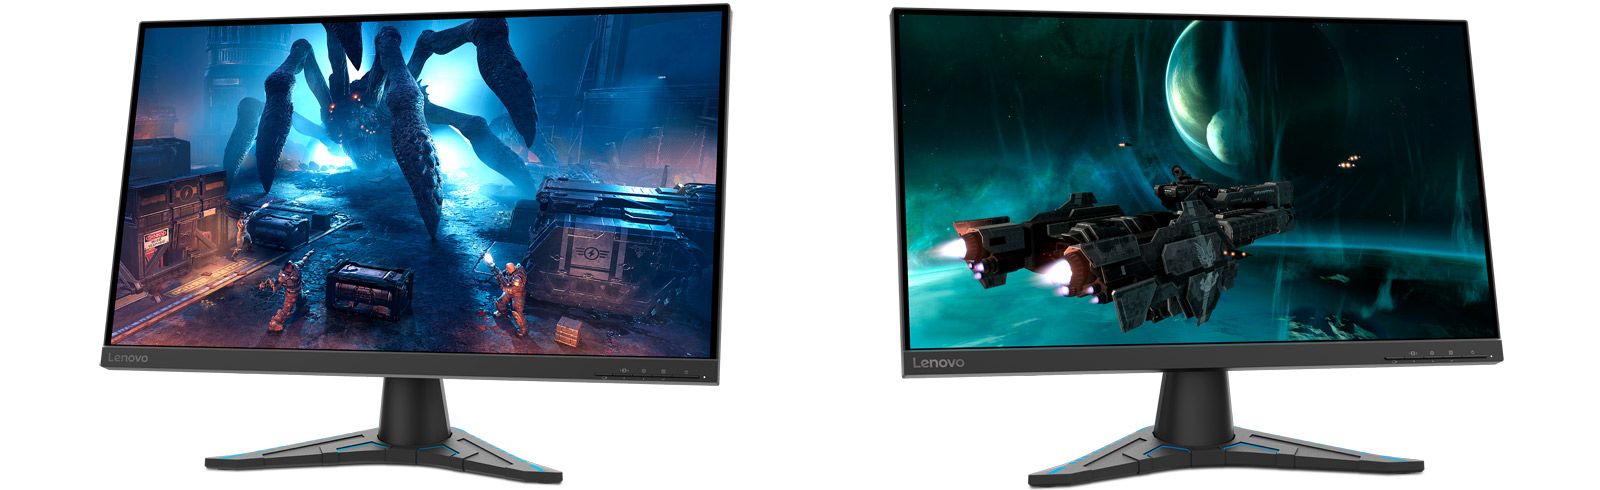 The Lenovo G27e-20 and Lenovo G24e-20 cater to gamers and offer eye protection